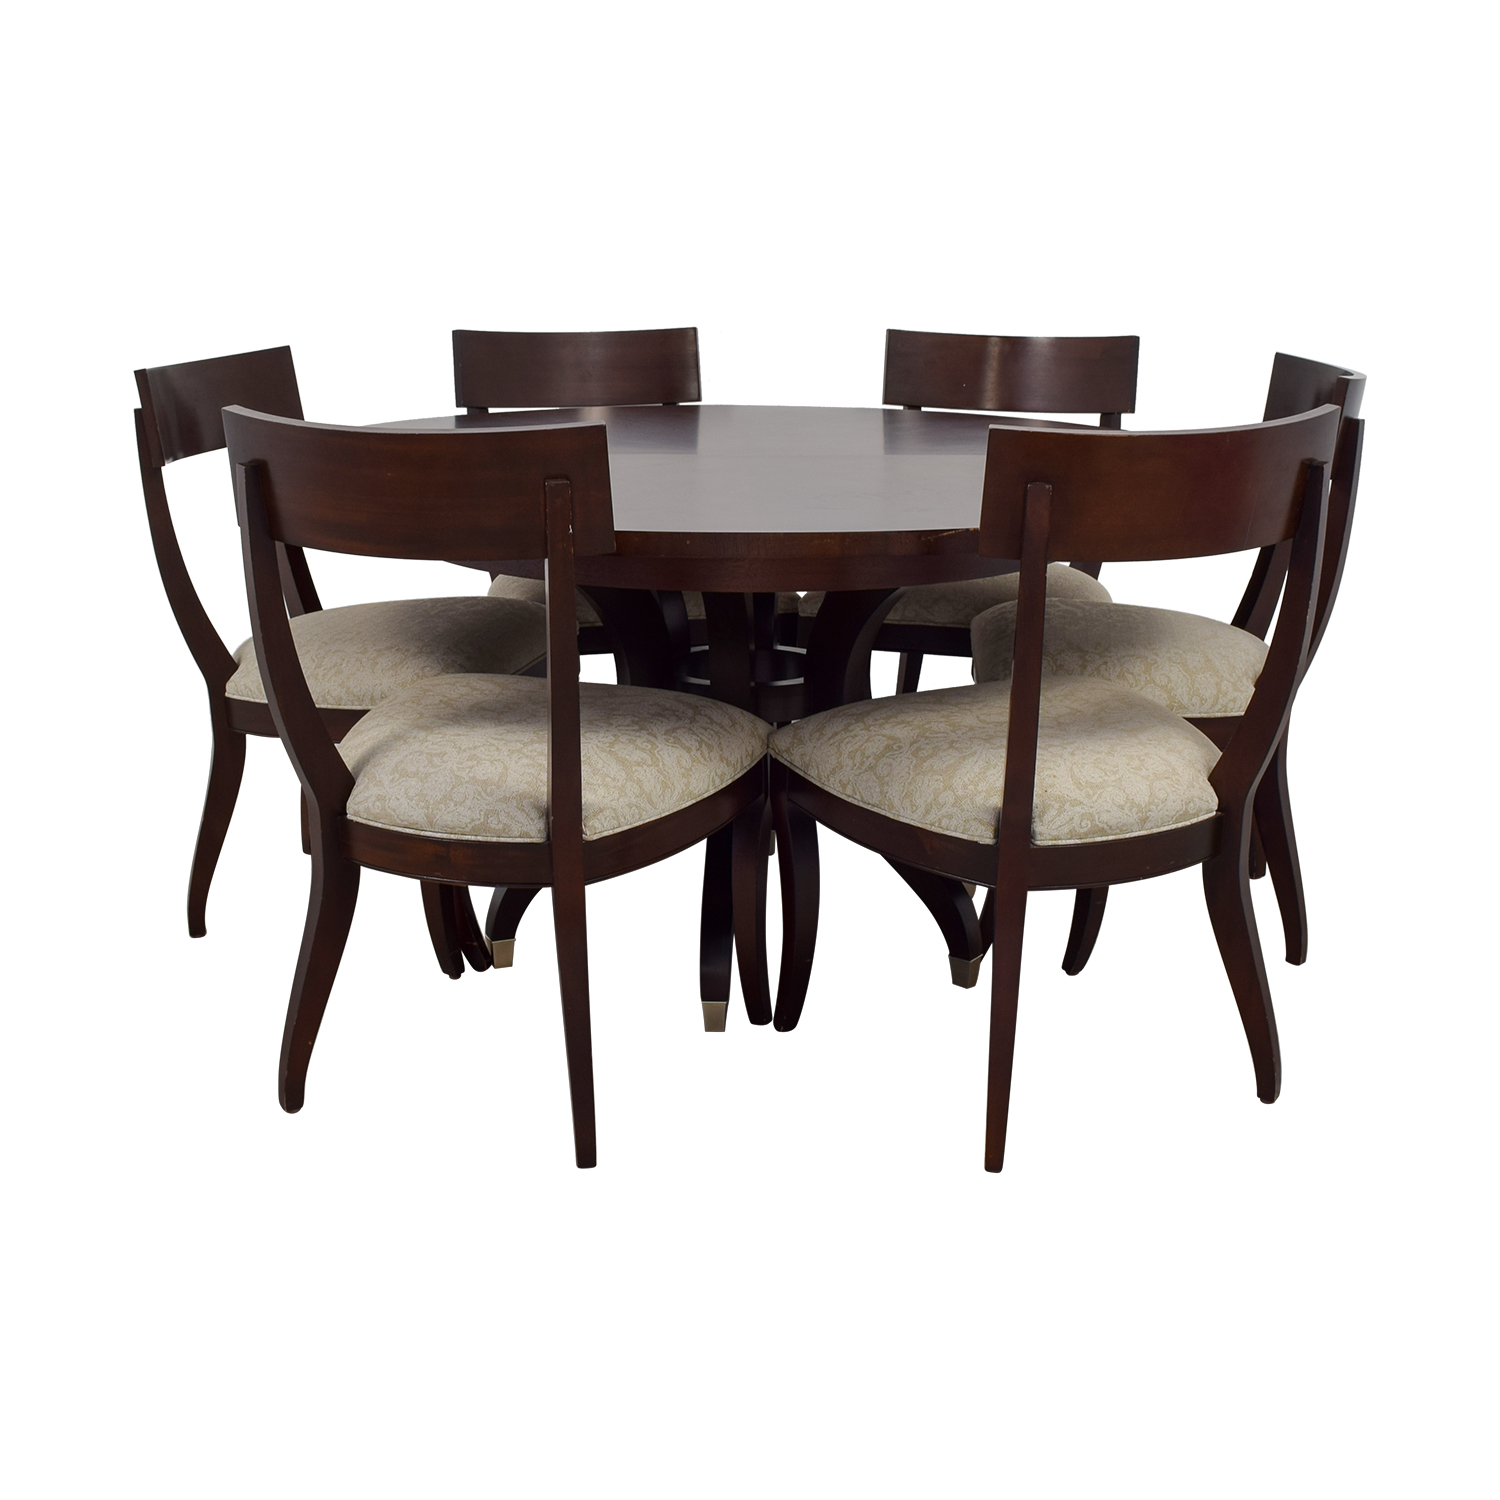 Ethan Allen Ethan Allen Round Dining Set with Leaf and Protective Cover Dining Sets